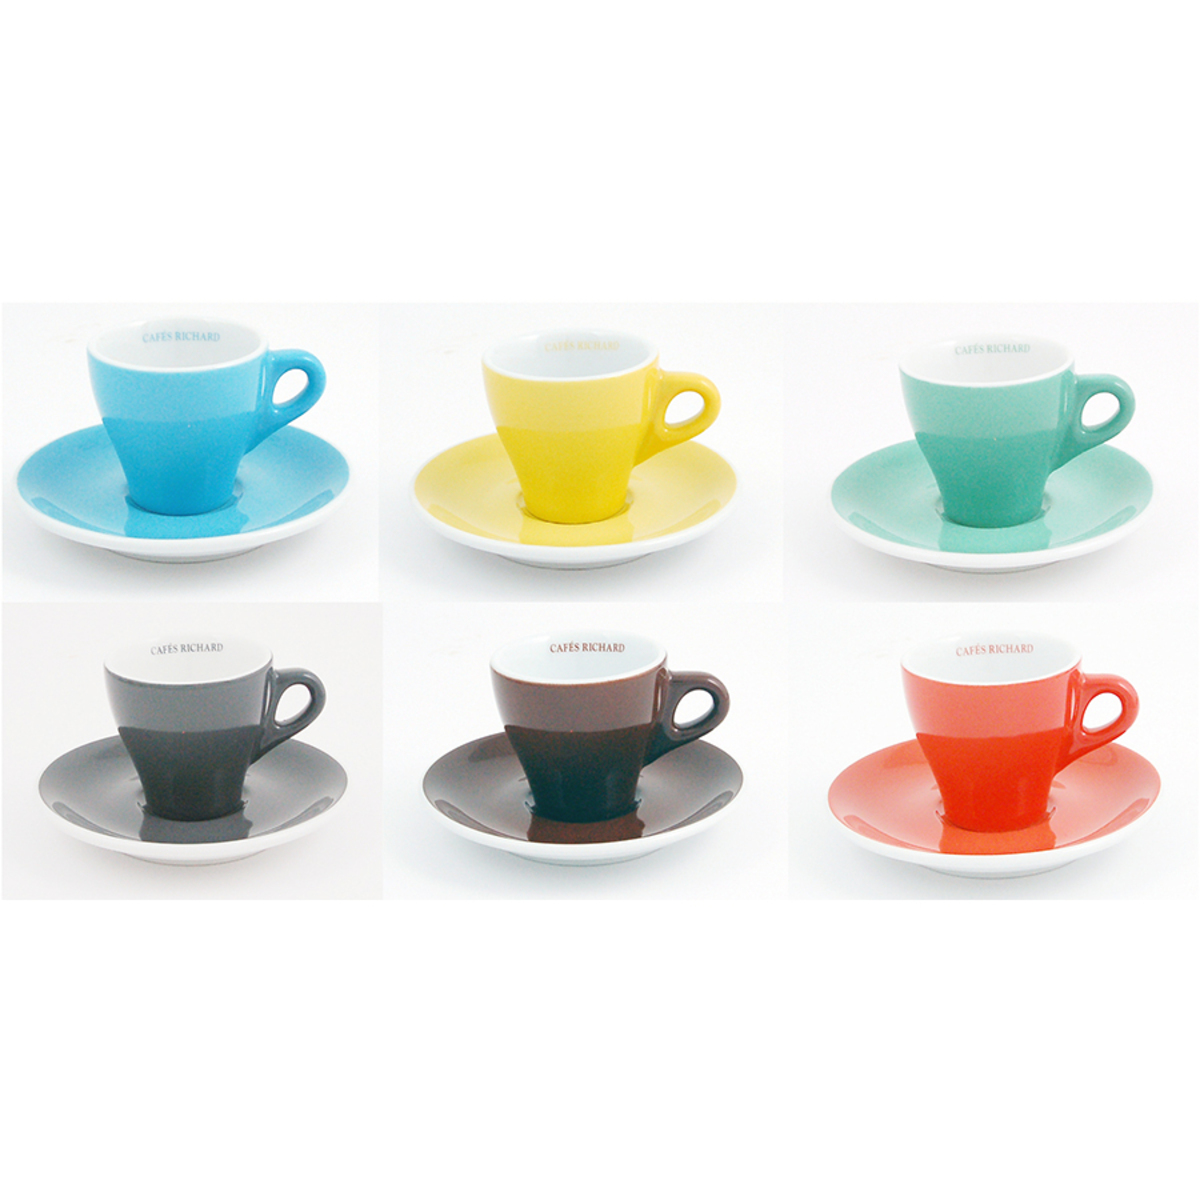 Set de 6 tasses et soucoupes expresso couleurs assorties de Cafés Richard